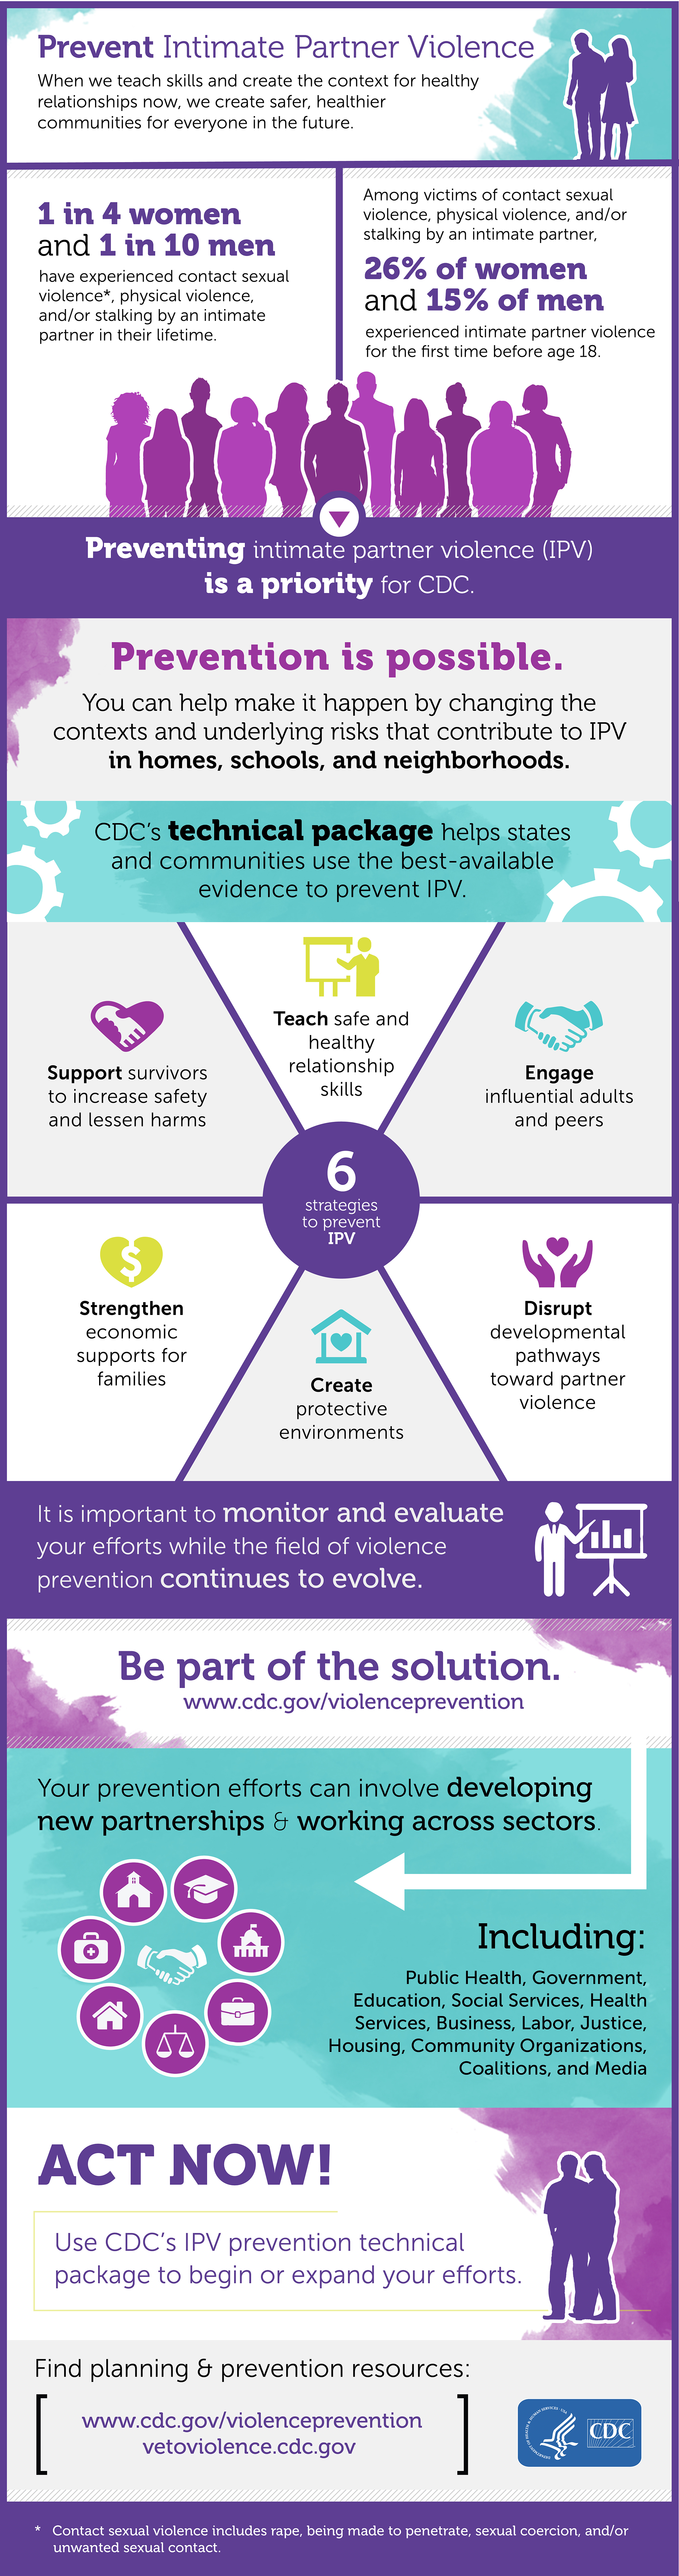 Intimate Partner Violence Infographic